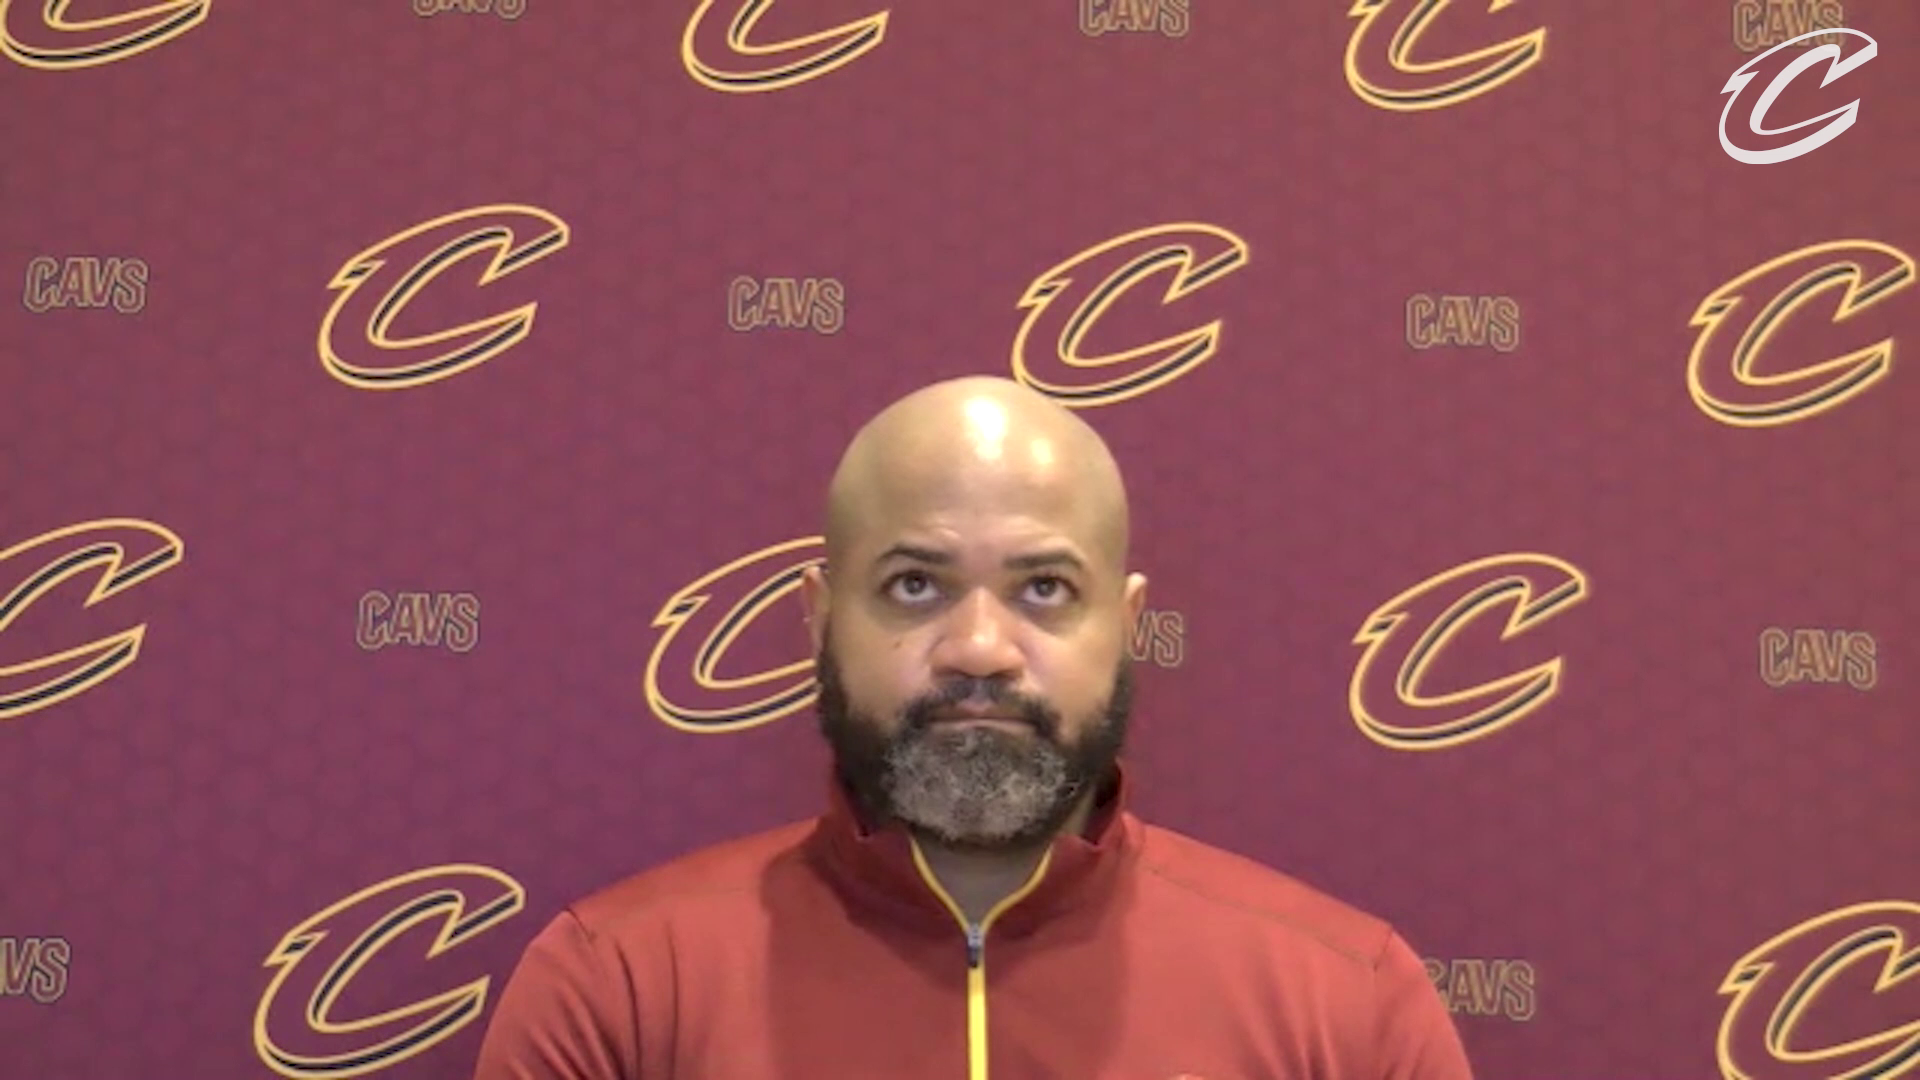 Cavs at Rockets Postgame: Coach Bickerstaff